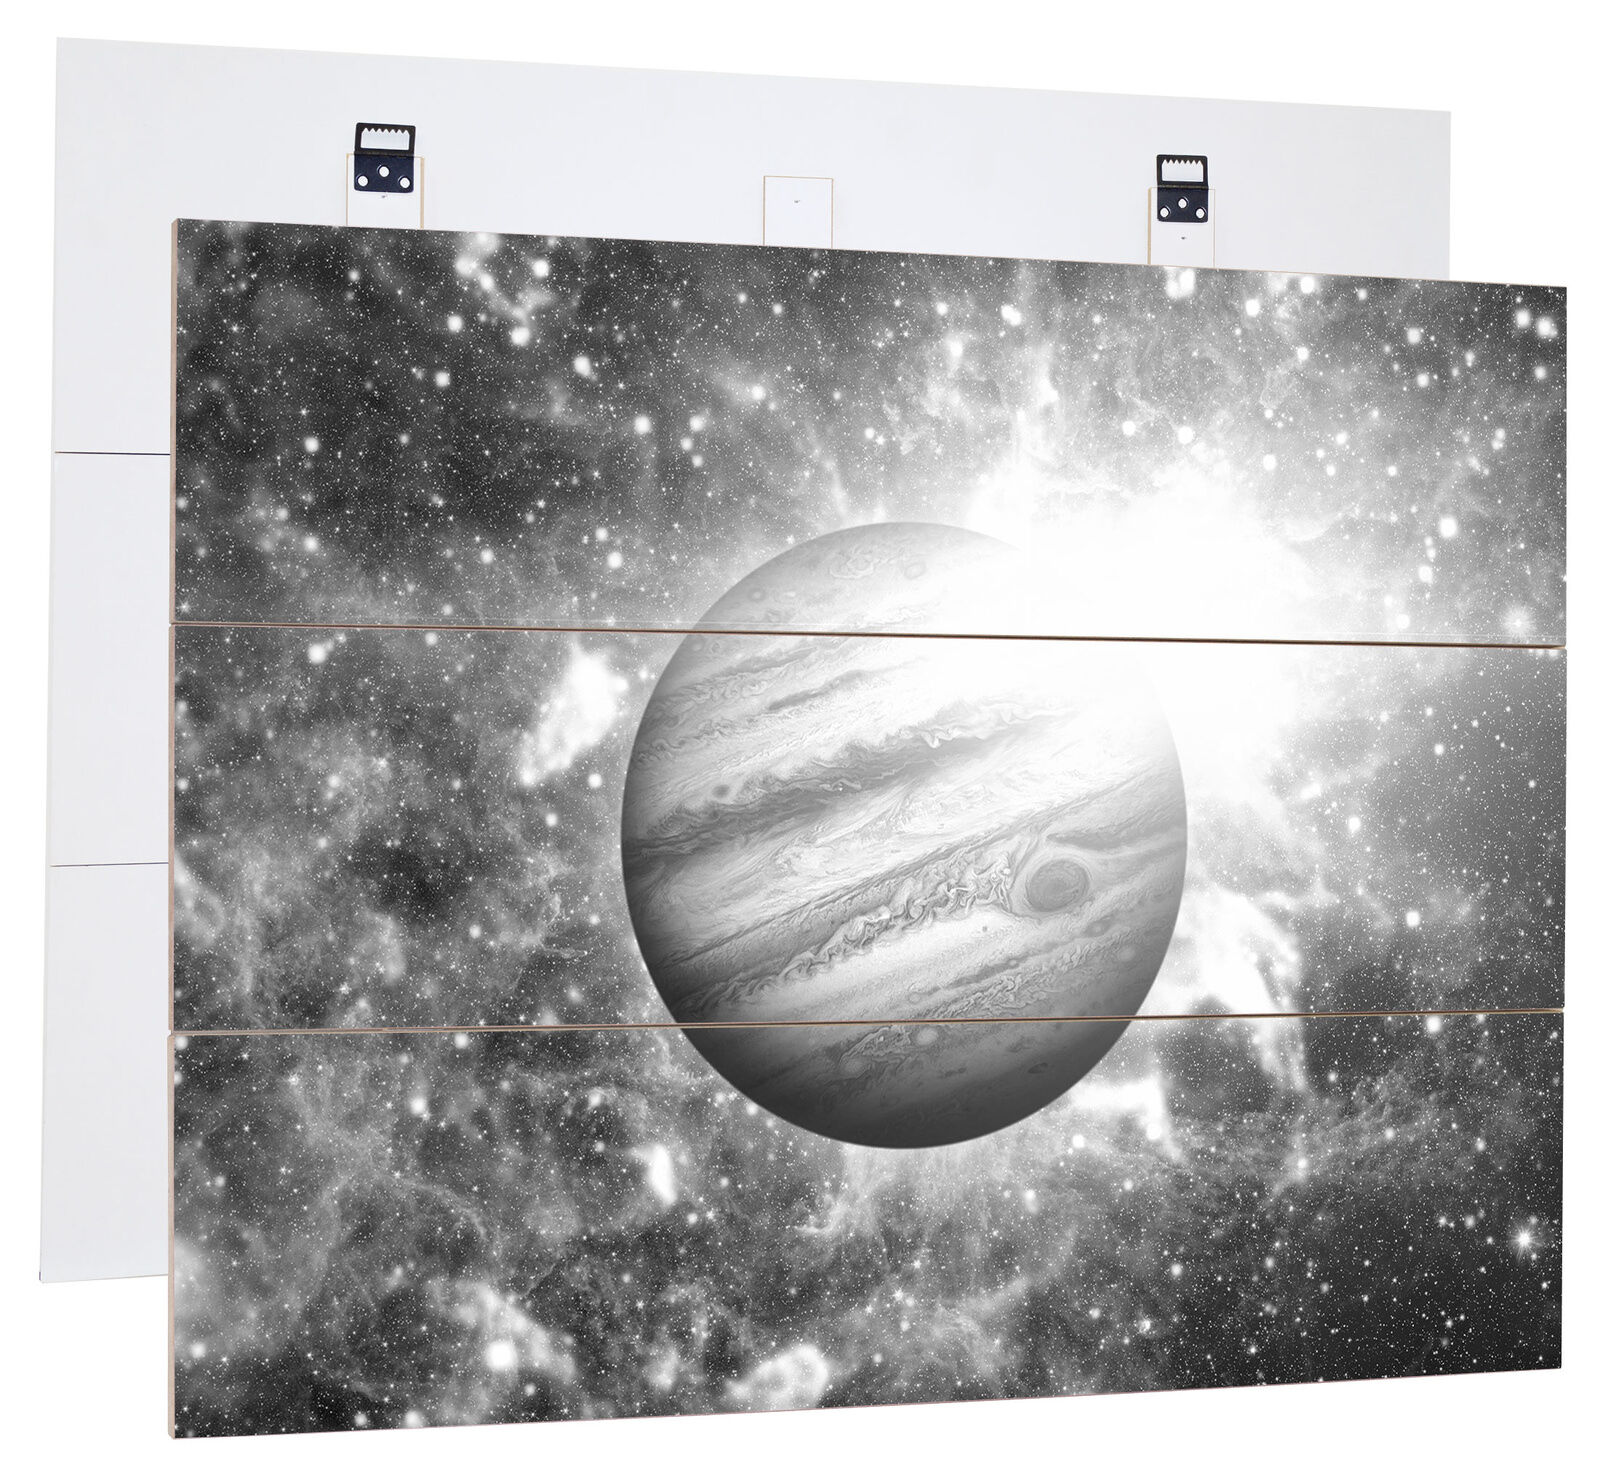 Planète Jupiter dans Univers Art B&w - Authentique Mdf-Holzbild Bretterlook,